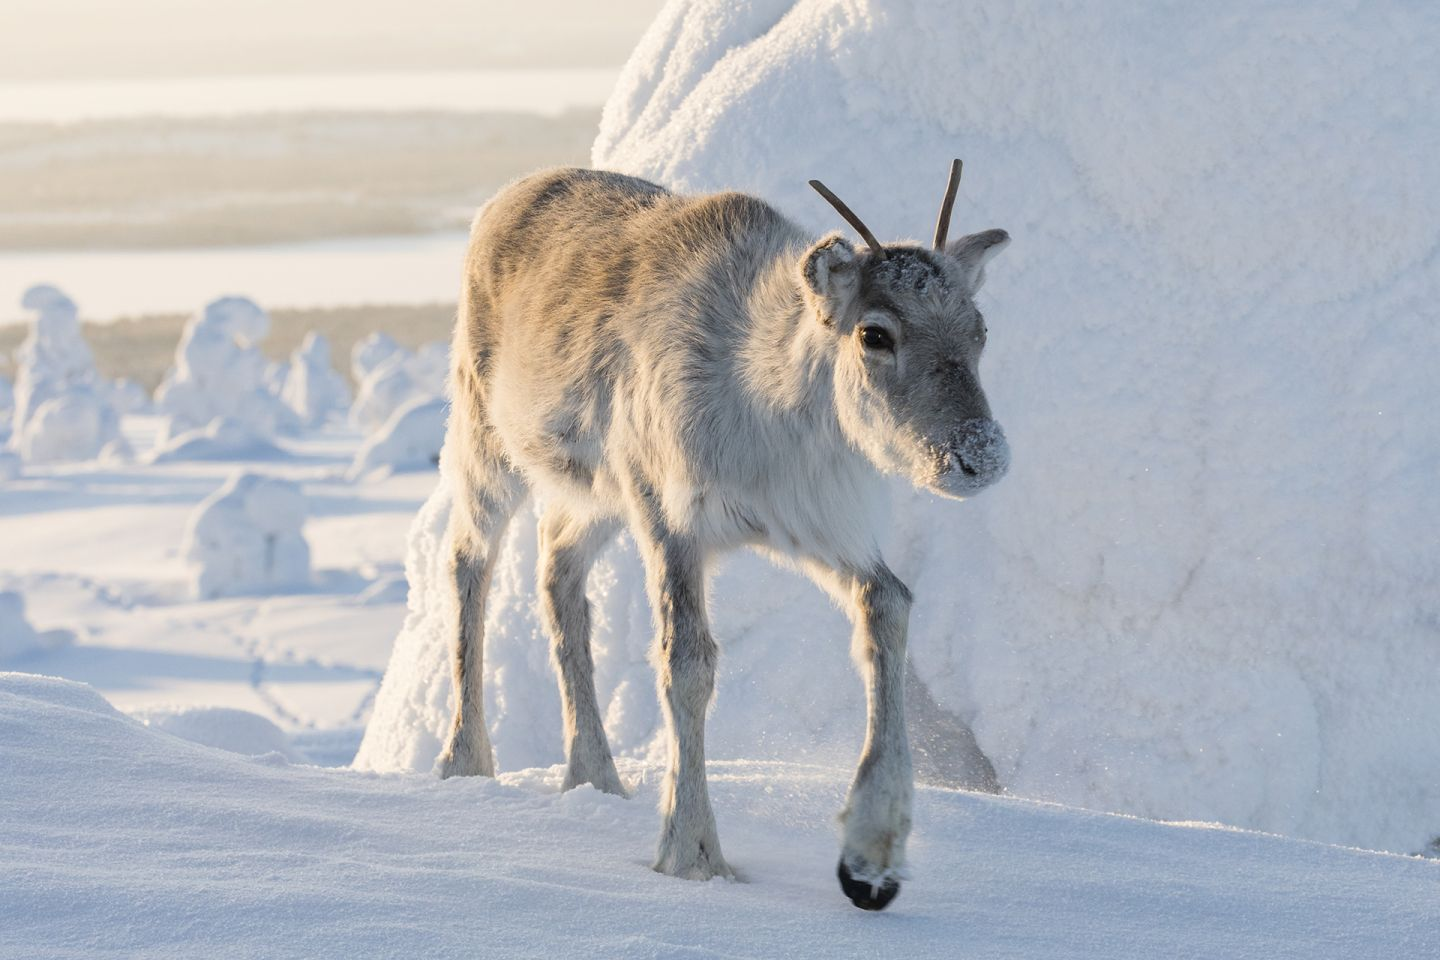 Reindeer walking across snow, during production of A Reindeer's Journey in Lapland